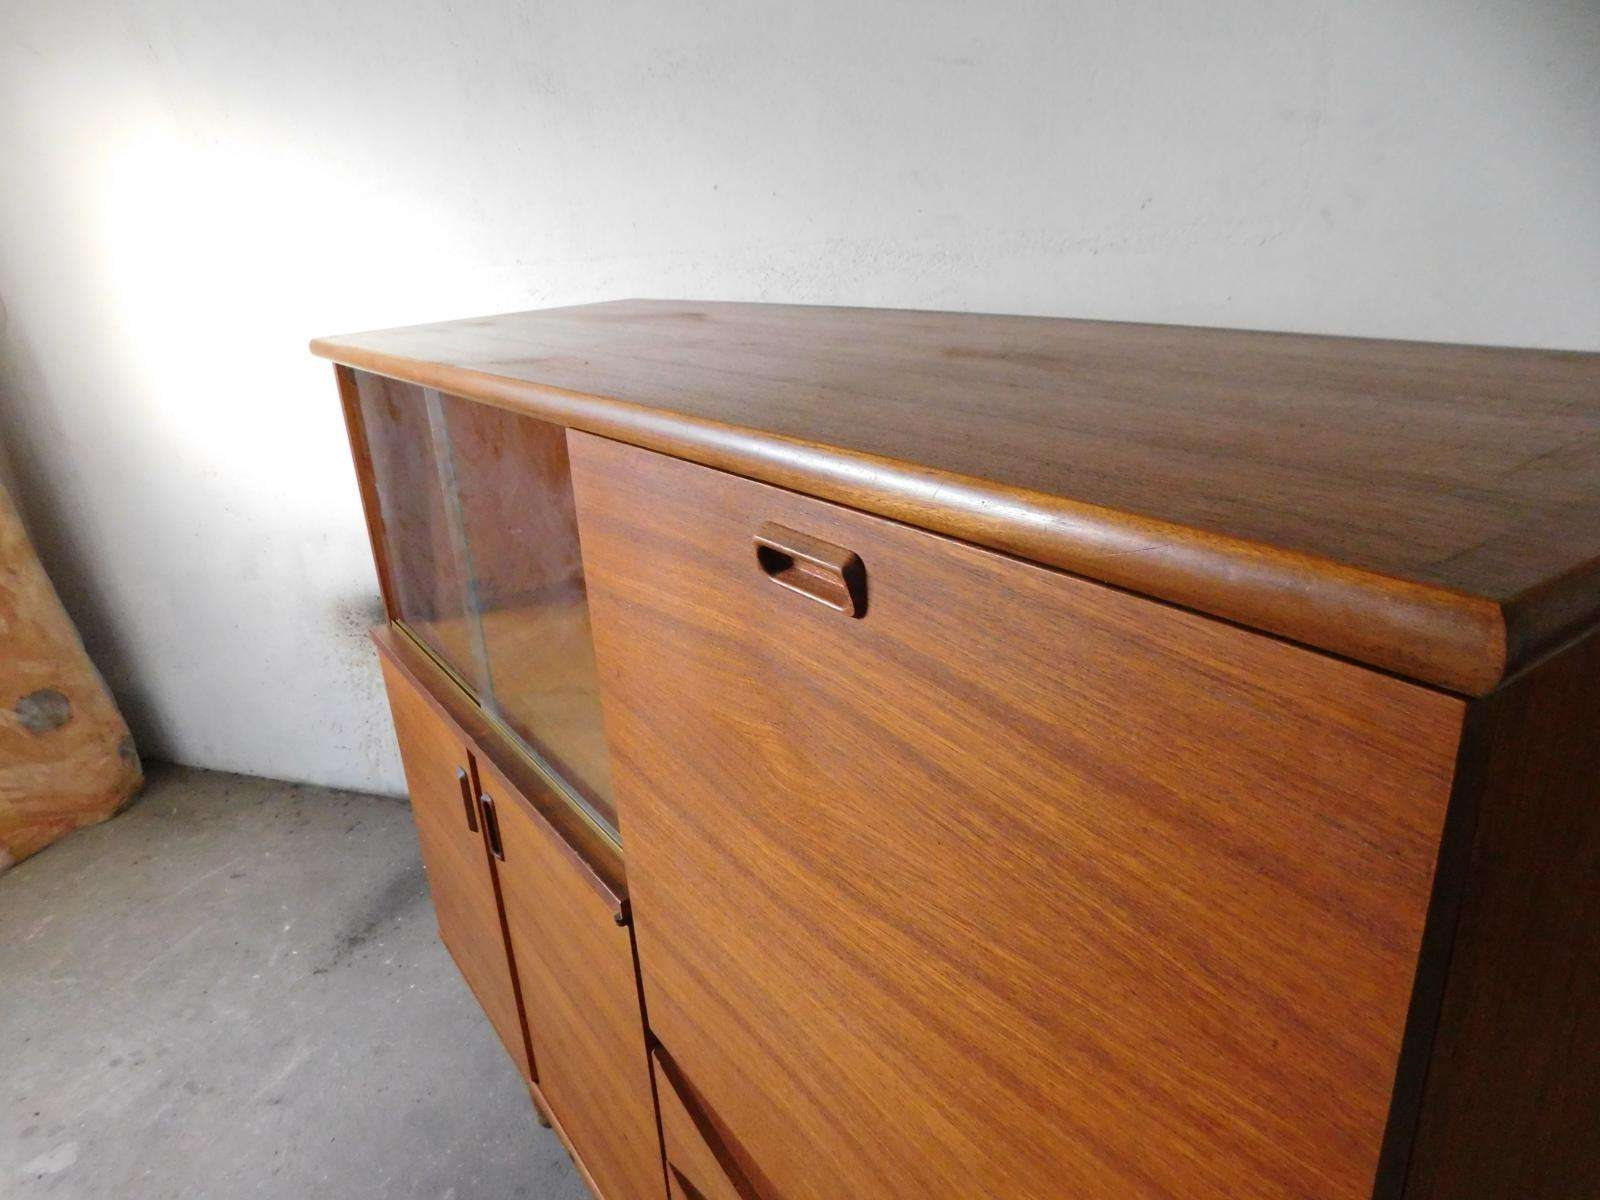 Large Teak Sideboard With Sliding Glass Doors, 1960s For Sale At Throughout Sideboards With Glass Doors And Drawers (View 10 of 20)